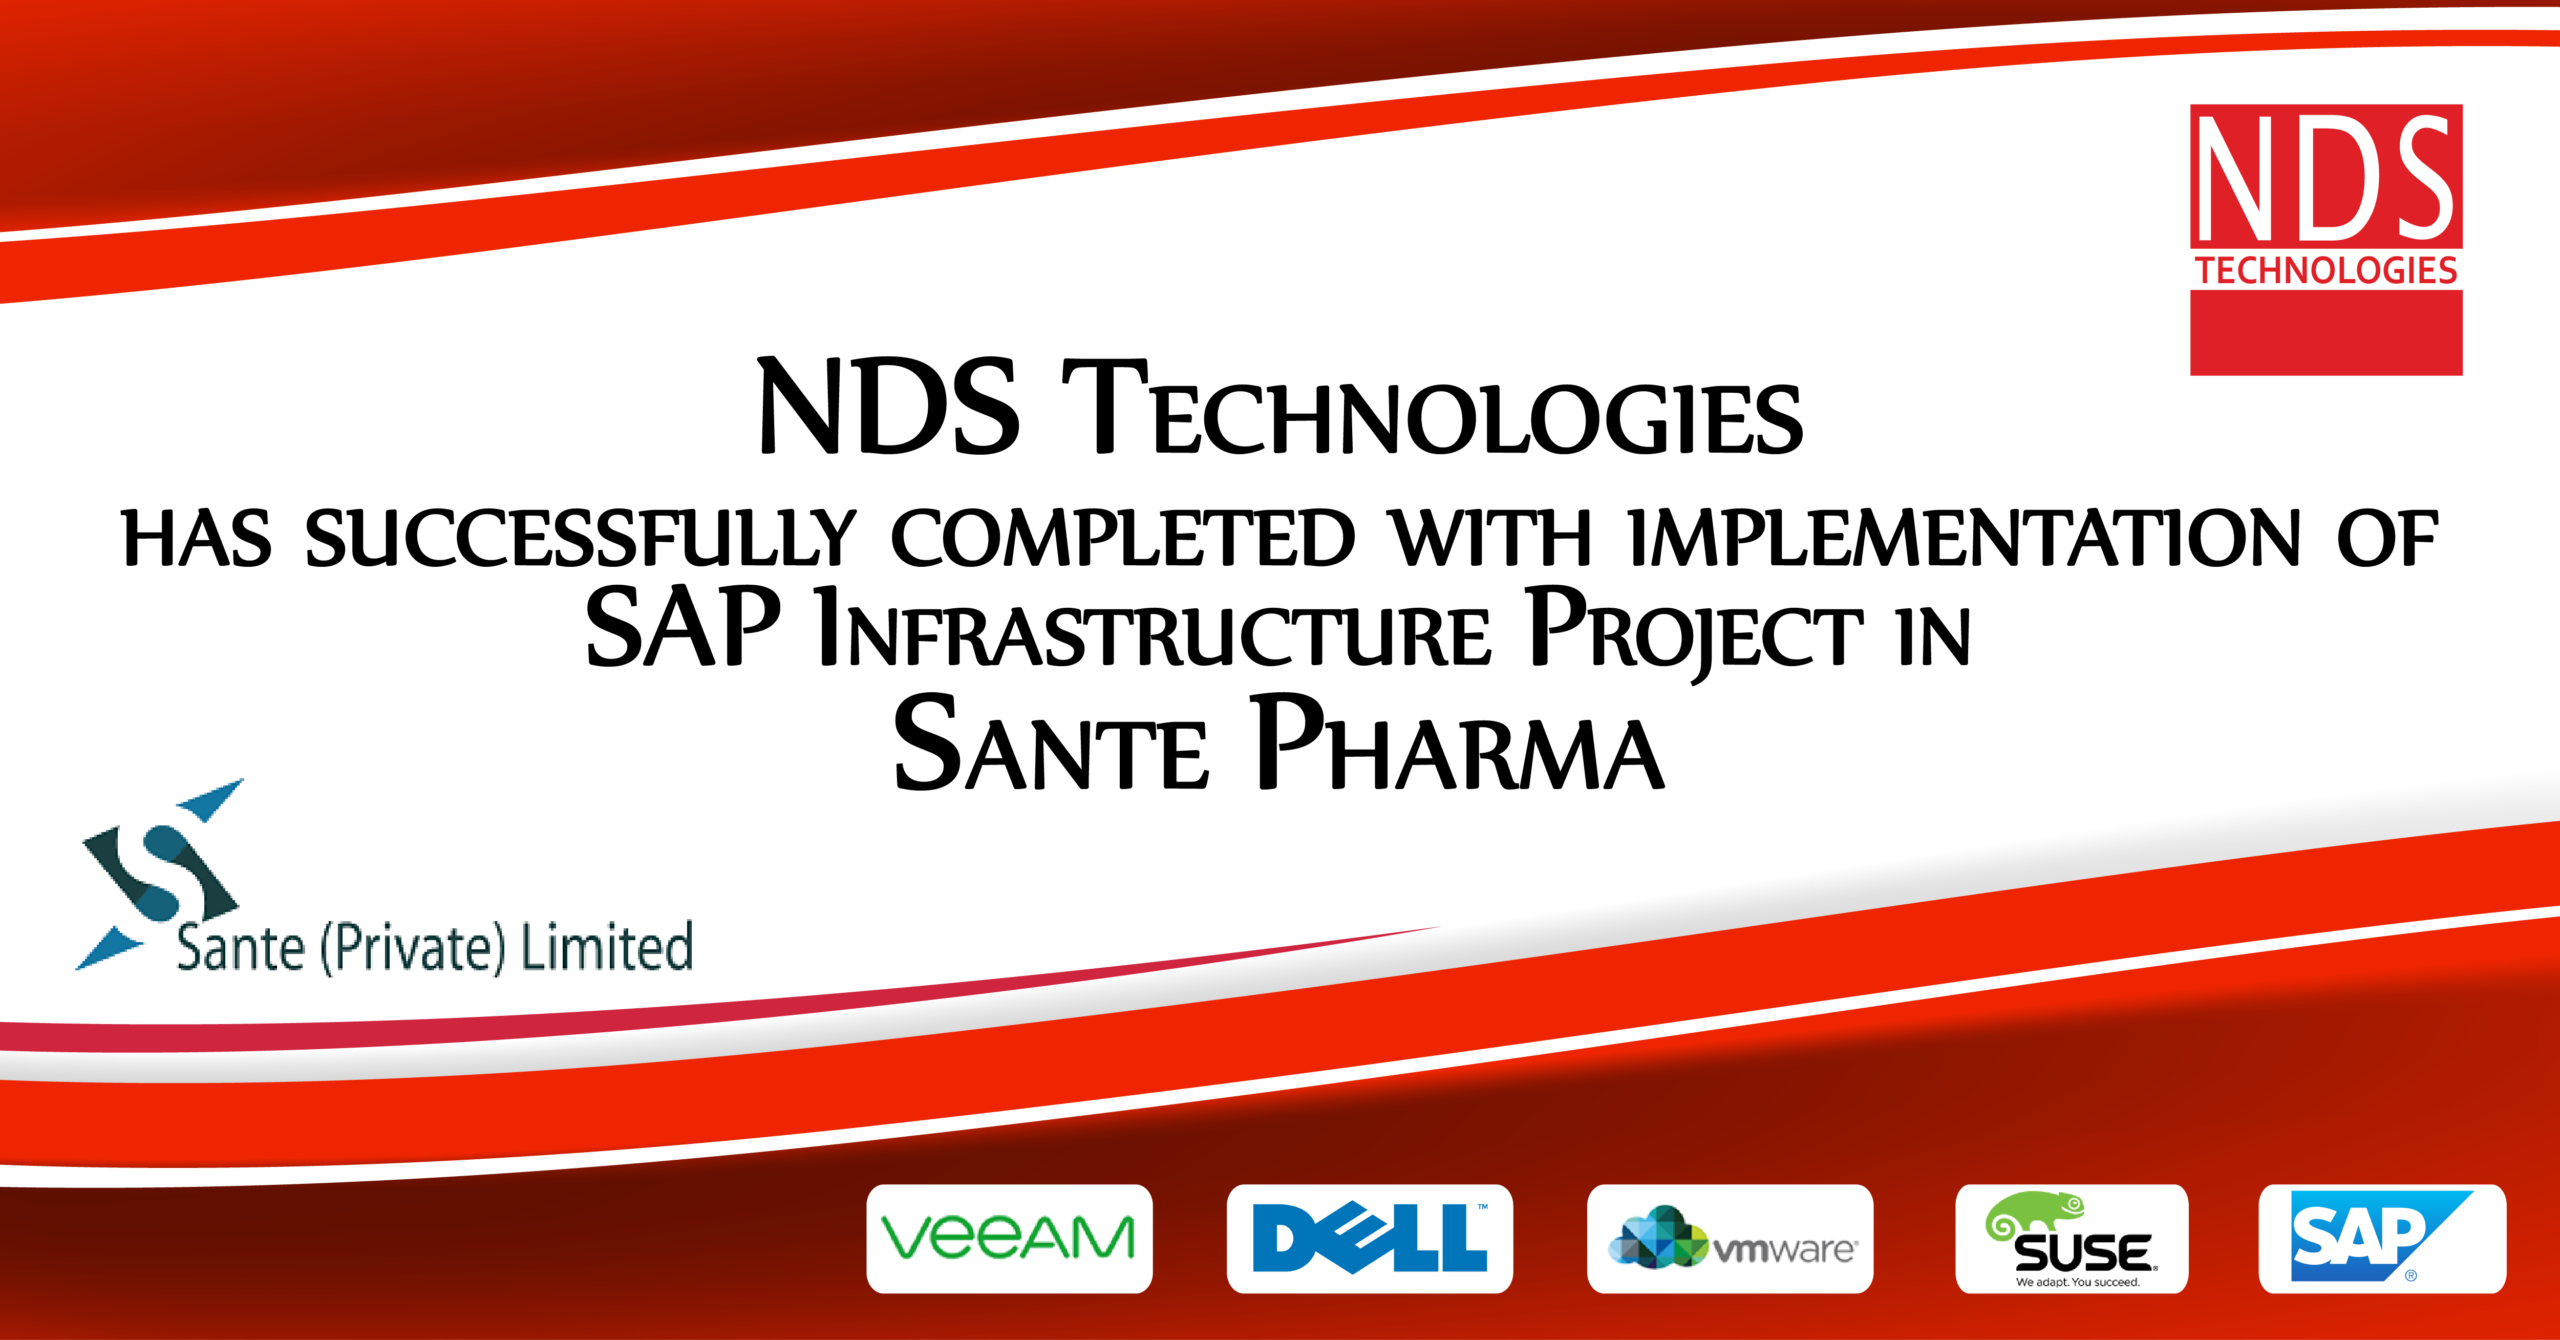 NDS Technologies has successfully completed with implementation of SAP Infrastructure Project in Sante Pharma